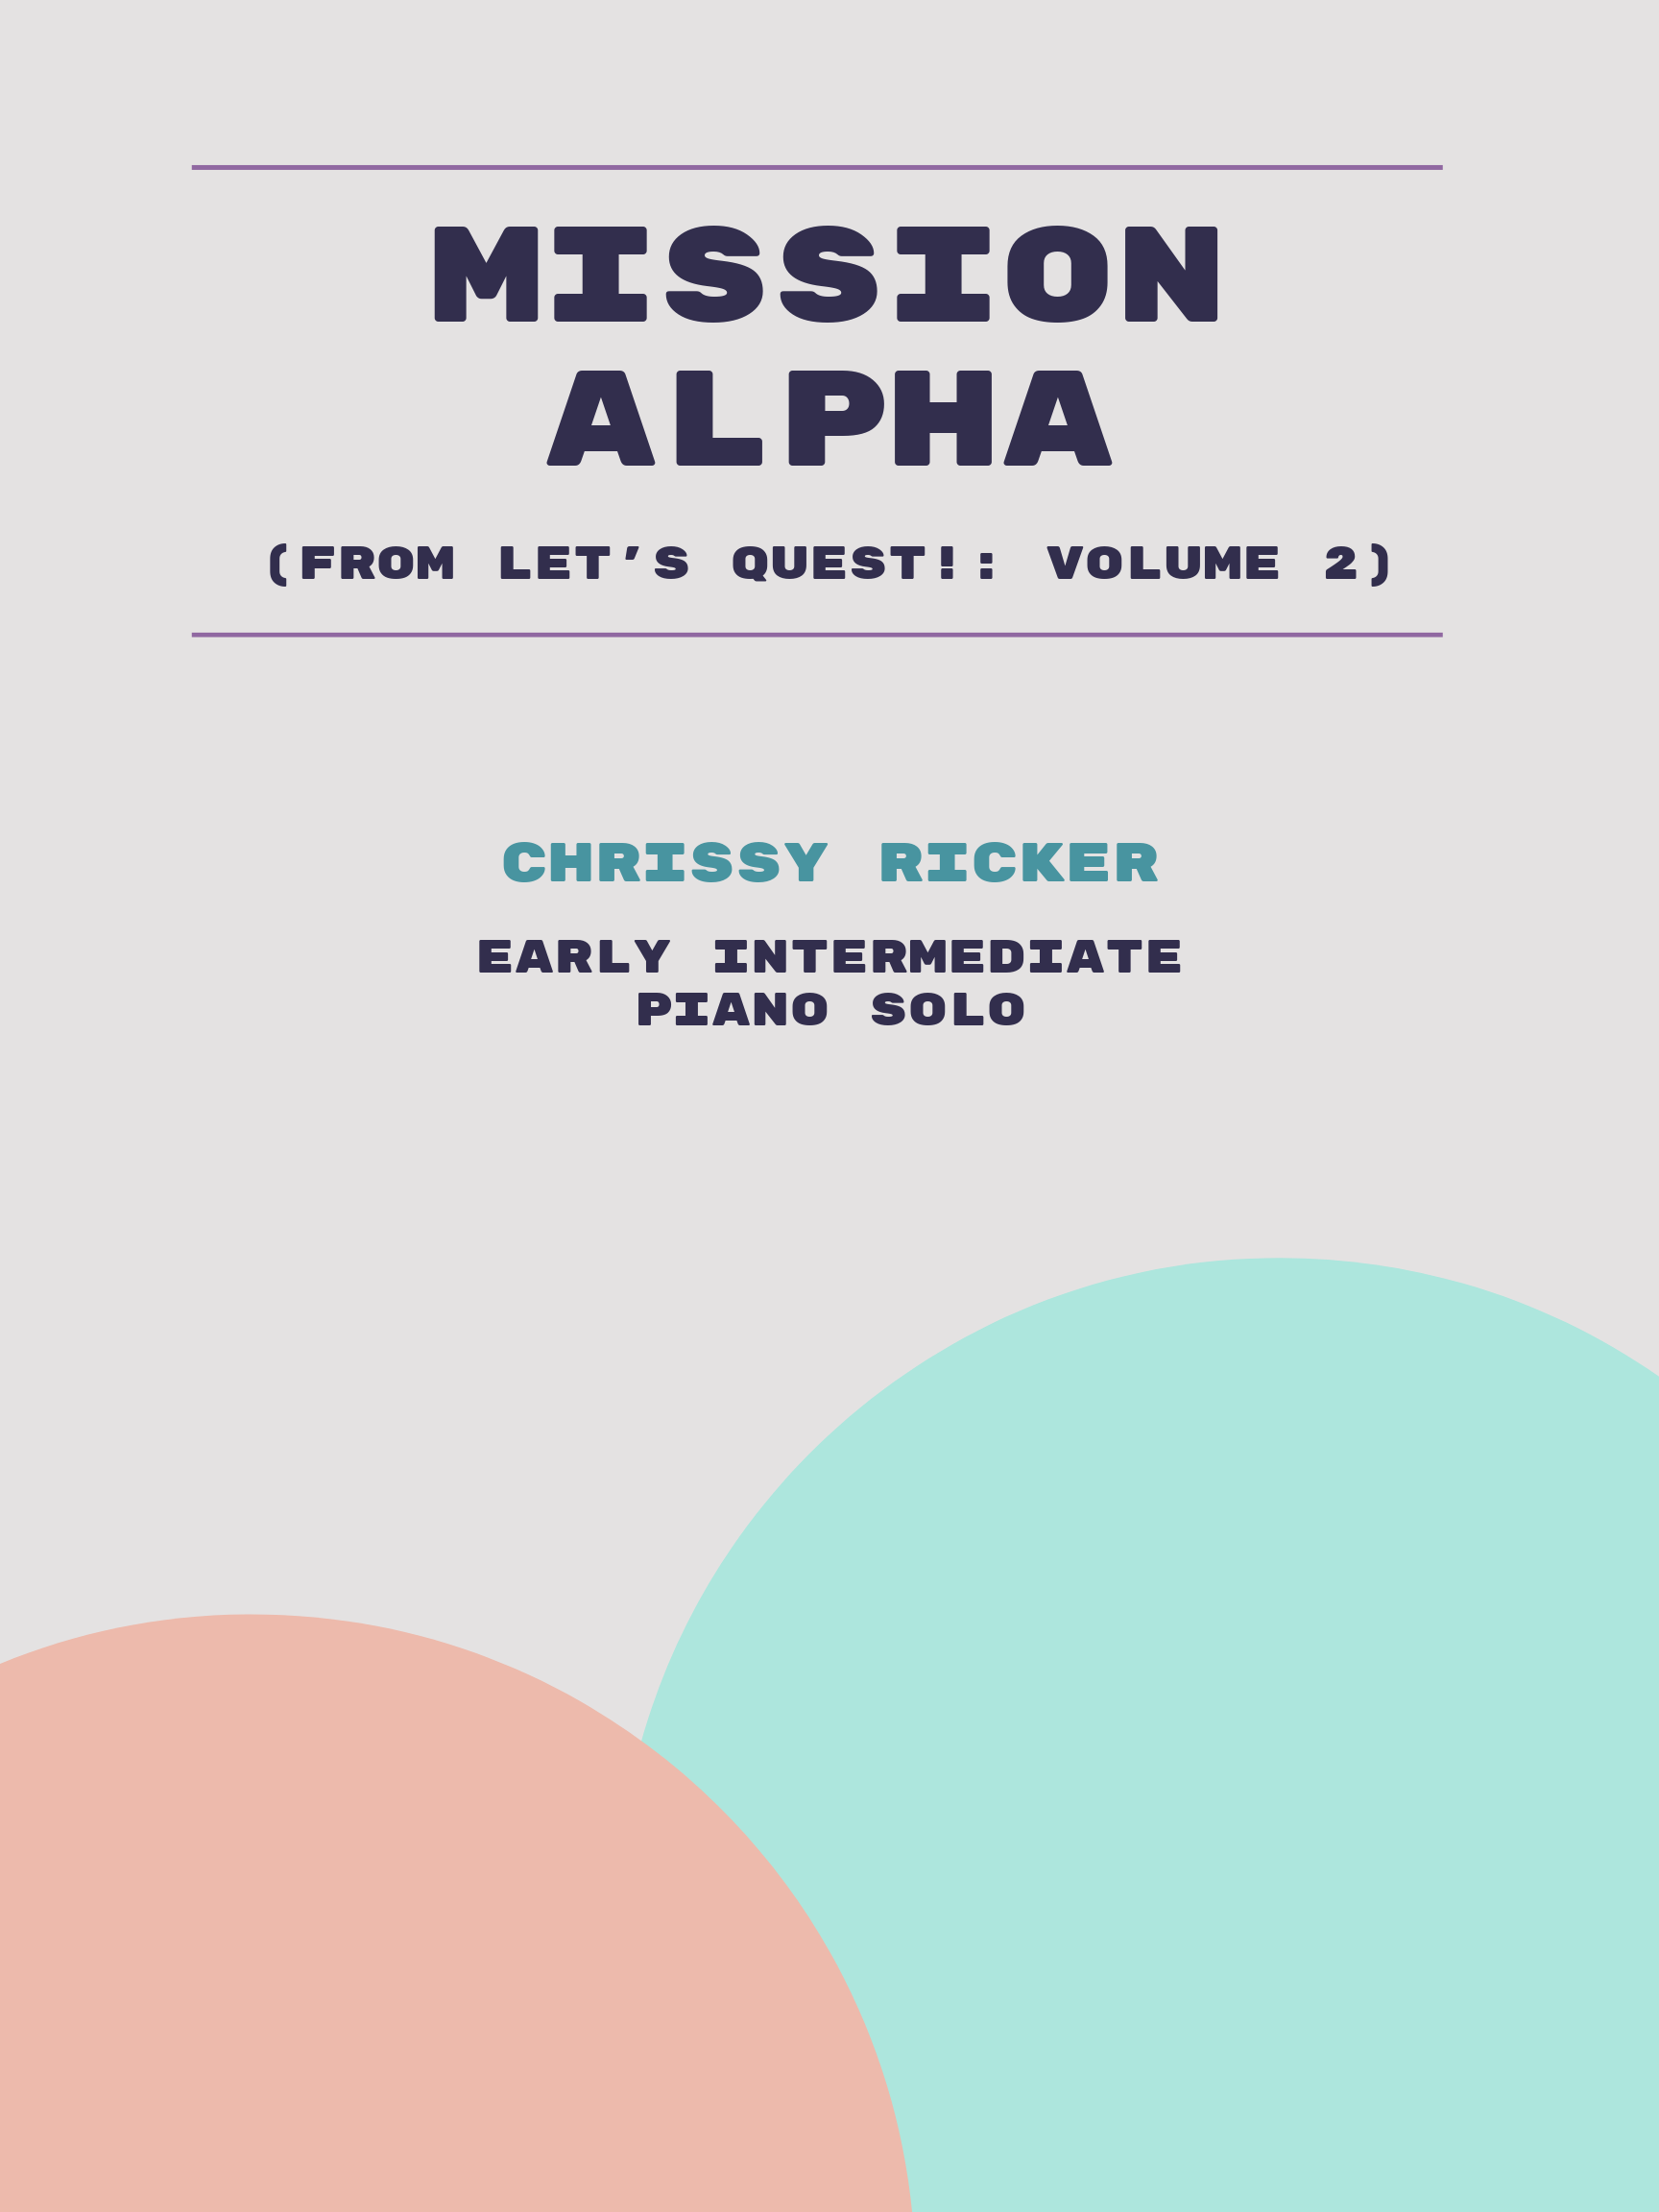 Mission Alpha by Chrissy Ricker